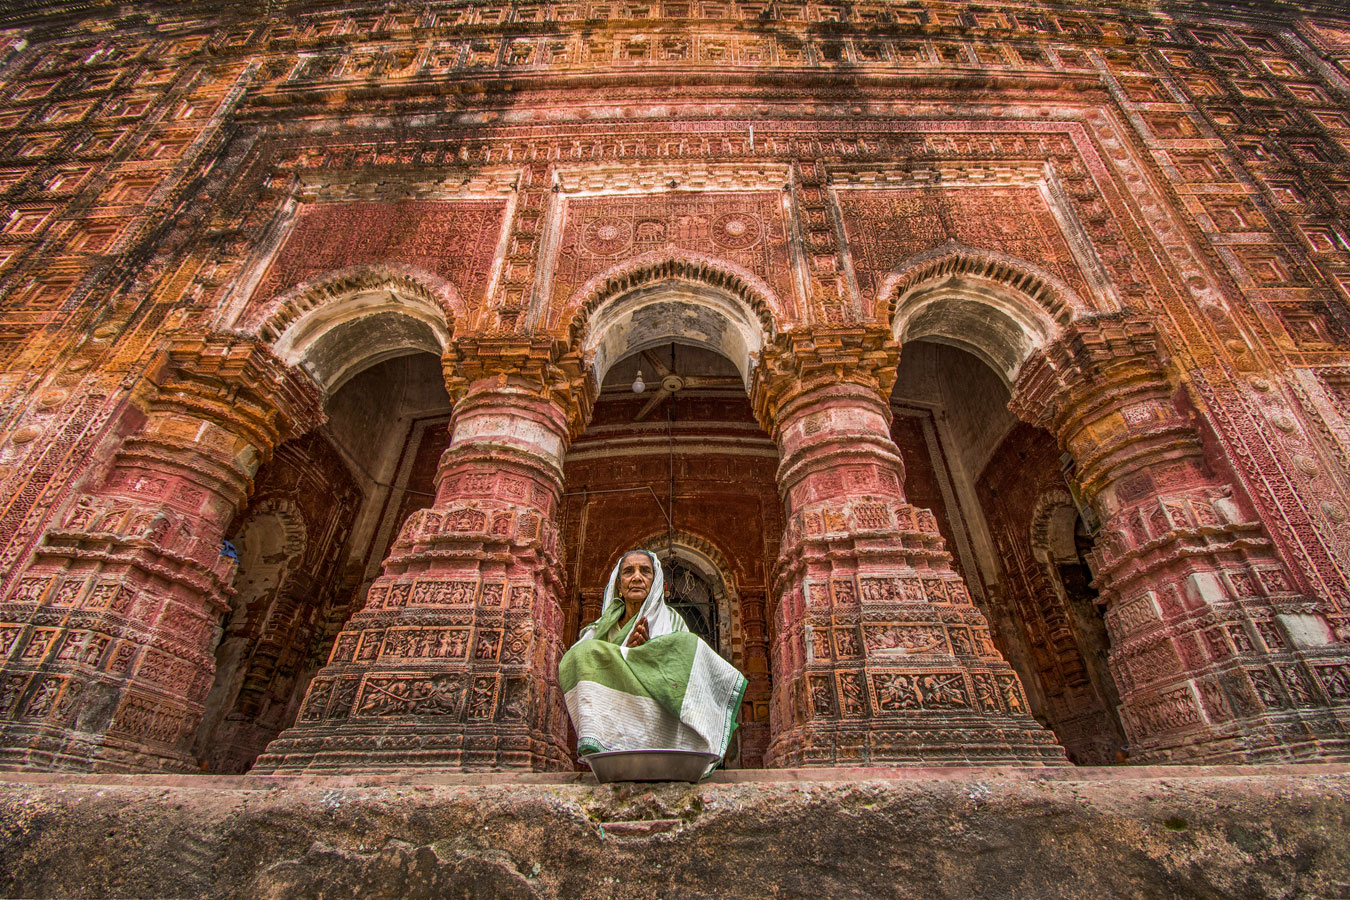 © Abdul Momin, 4th place, Wiki Loves Monuments Photo Contest